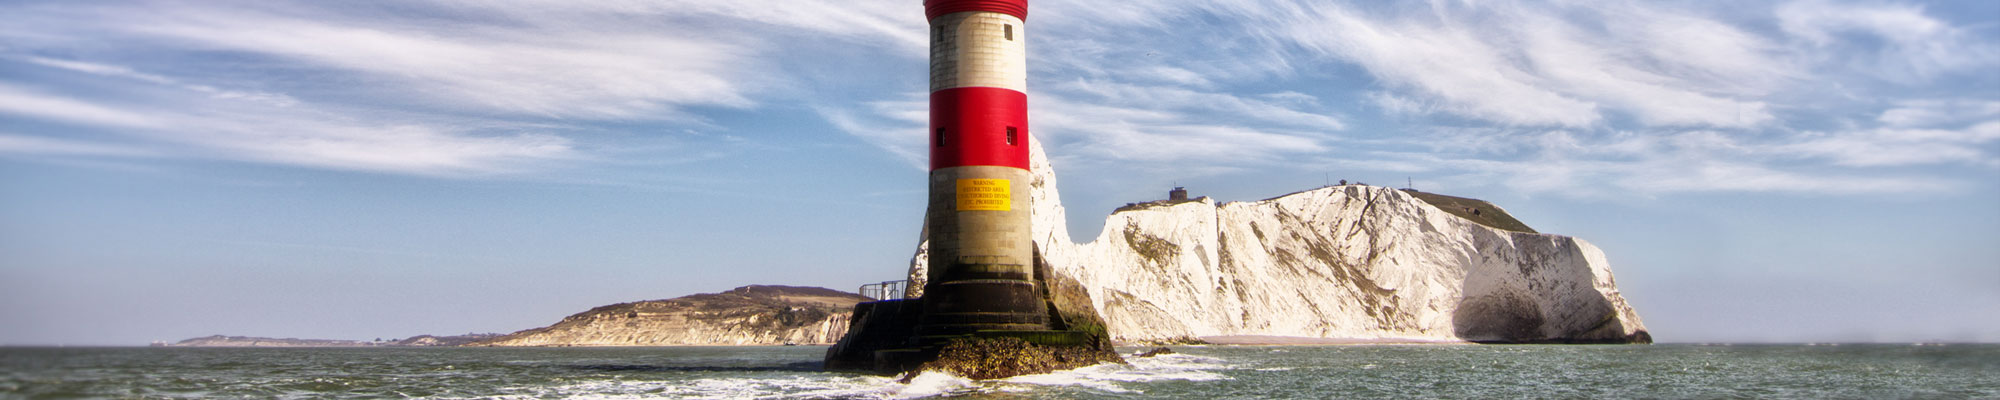 Activities around the Isle of Wight